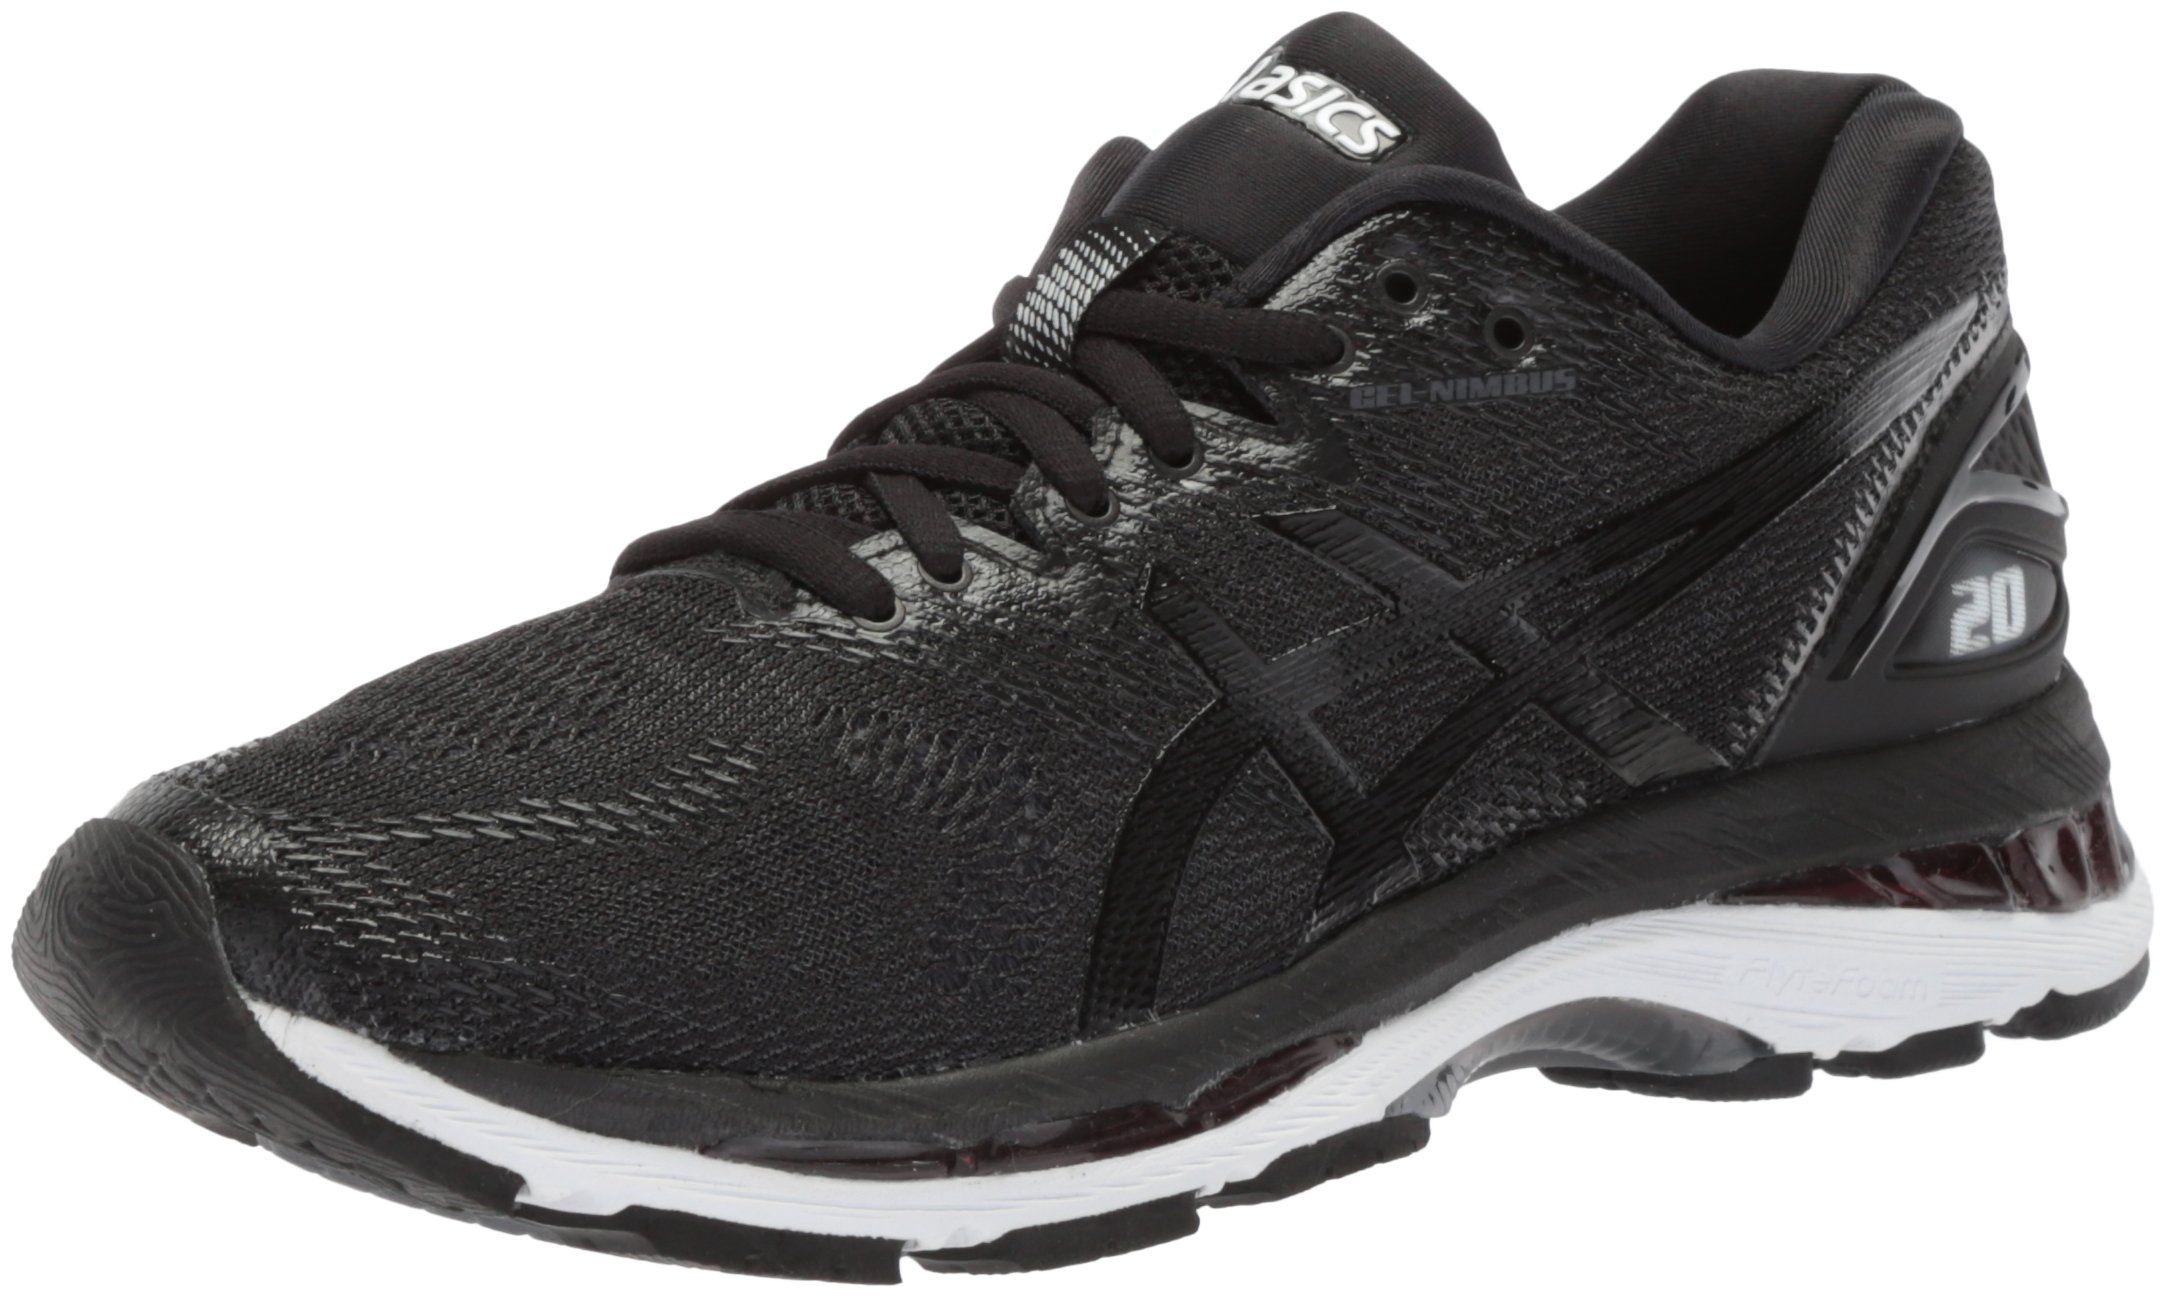 ASICS Women's Gel-Nimbus 20 Running Shoe, black/white/carbon, 5 Medium US by ASICS (Image #1)